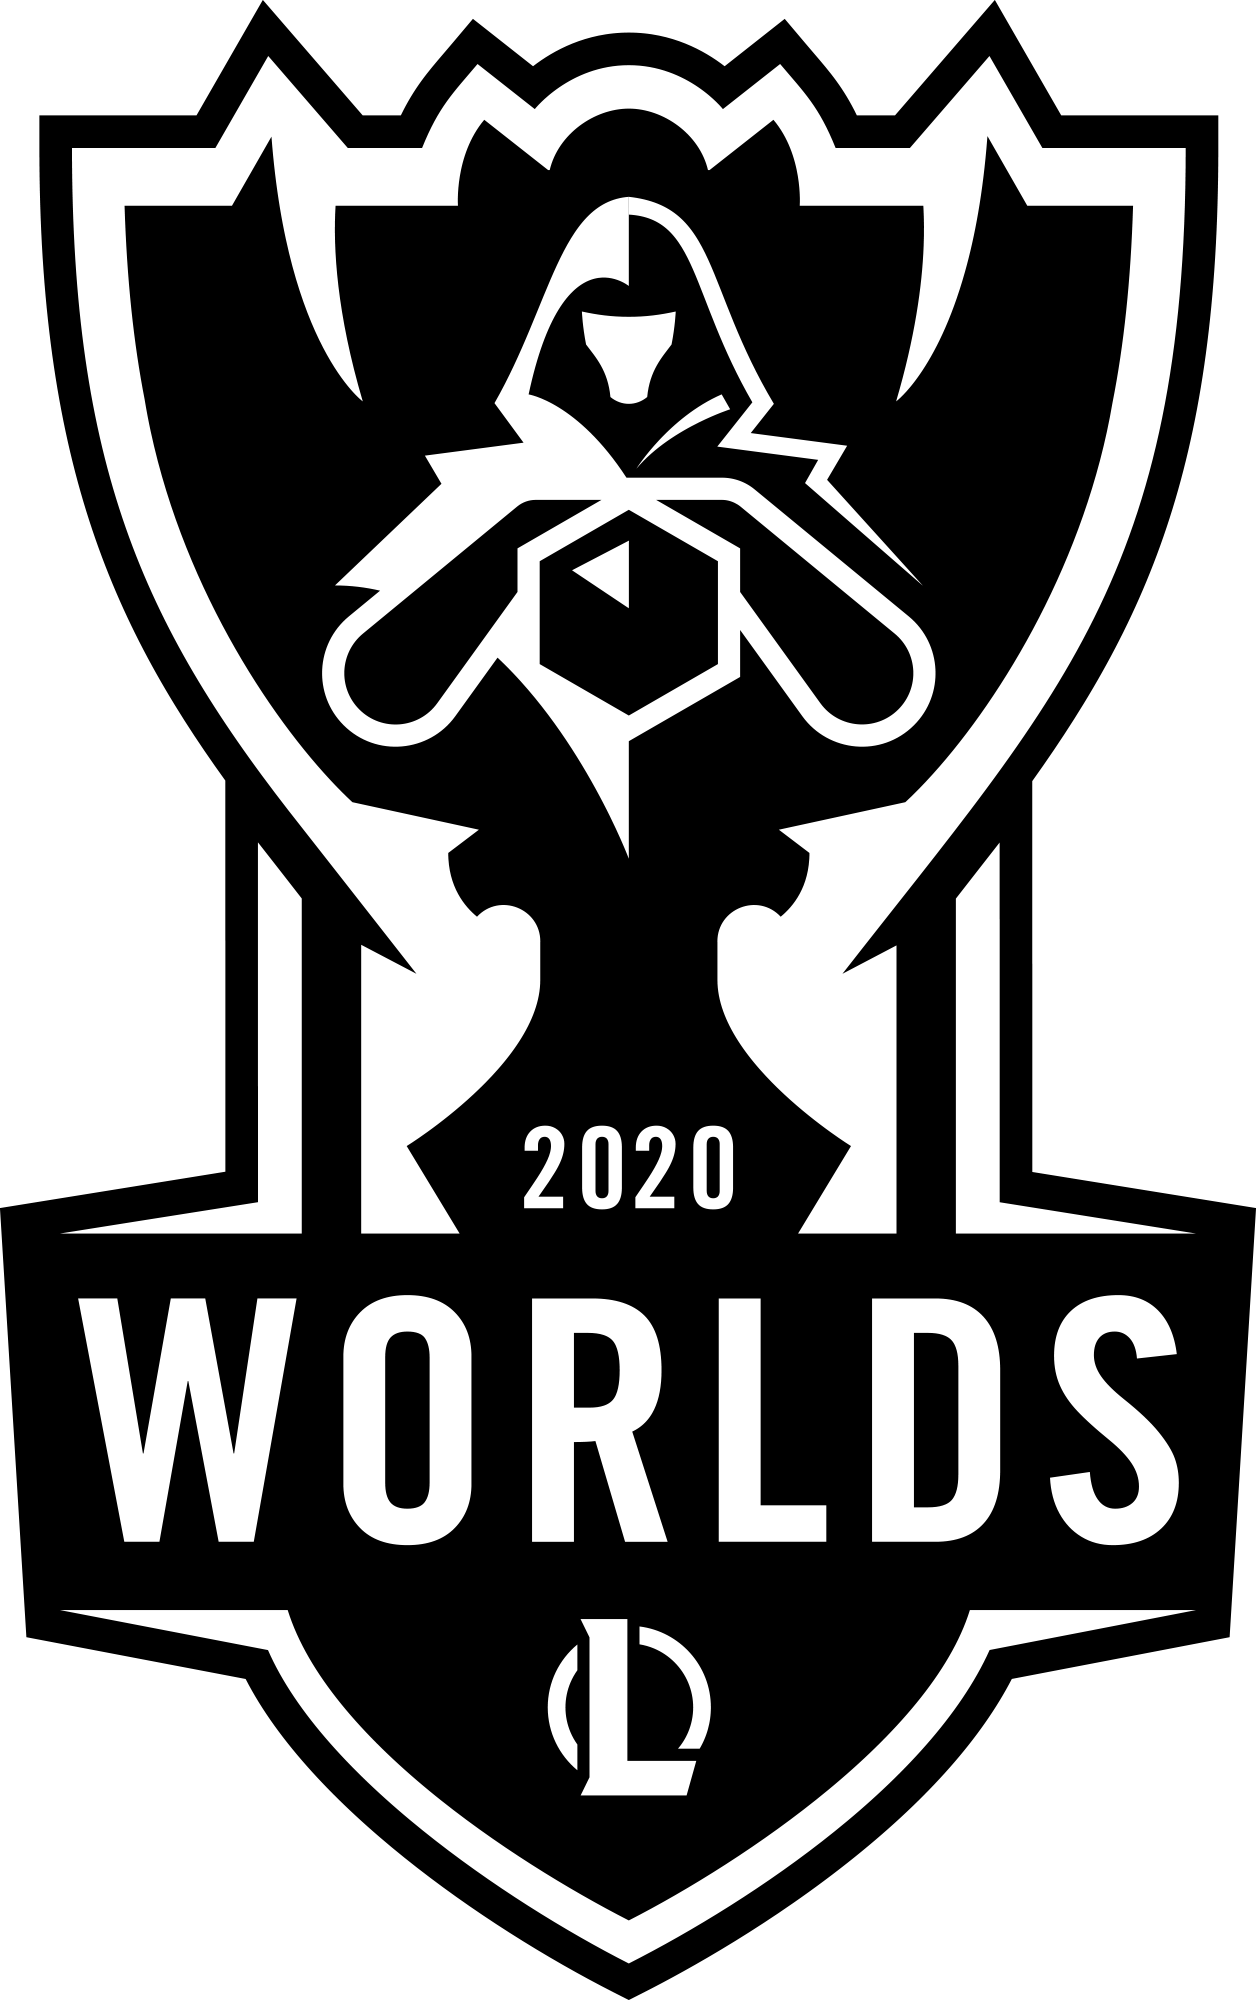 Worlds 2020 Main Event Leaguepedia League Of Legends Esports Wiki